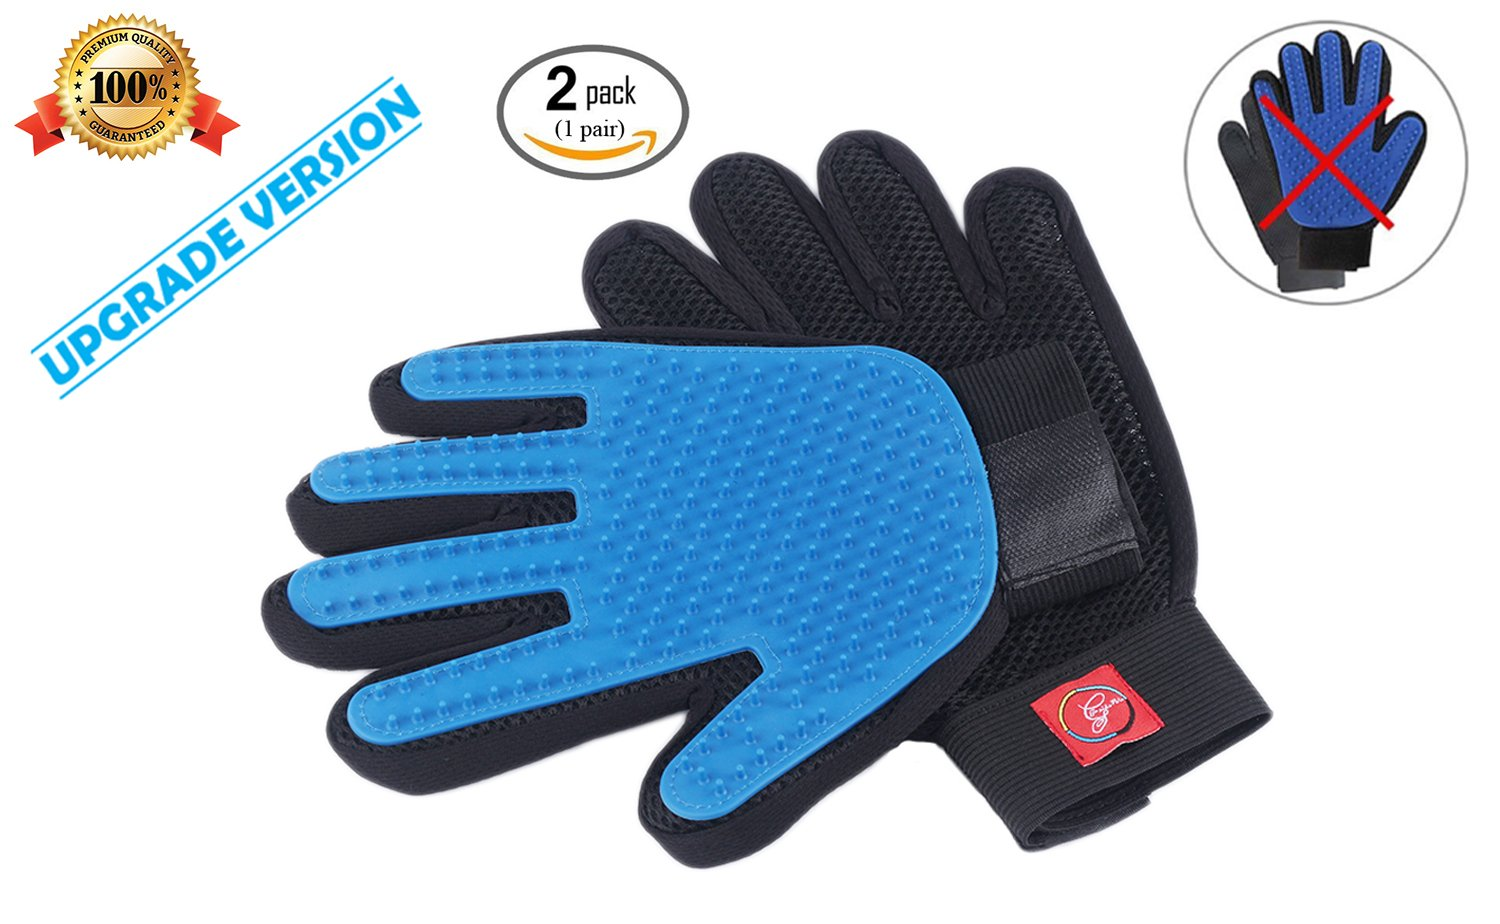 [UPGRADED VERSION]-Deshedding Glove For Dogs, Cats And Pets With Fur, Hair. Amazing,Gentle Pet Hair Remover. Short-Long Hair Grooming Deshedder Tool Kit Unlike Other Brush & Gloves